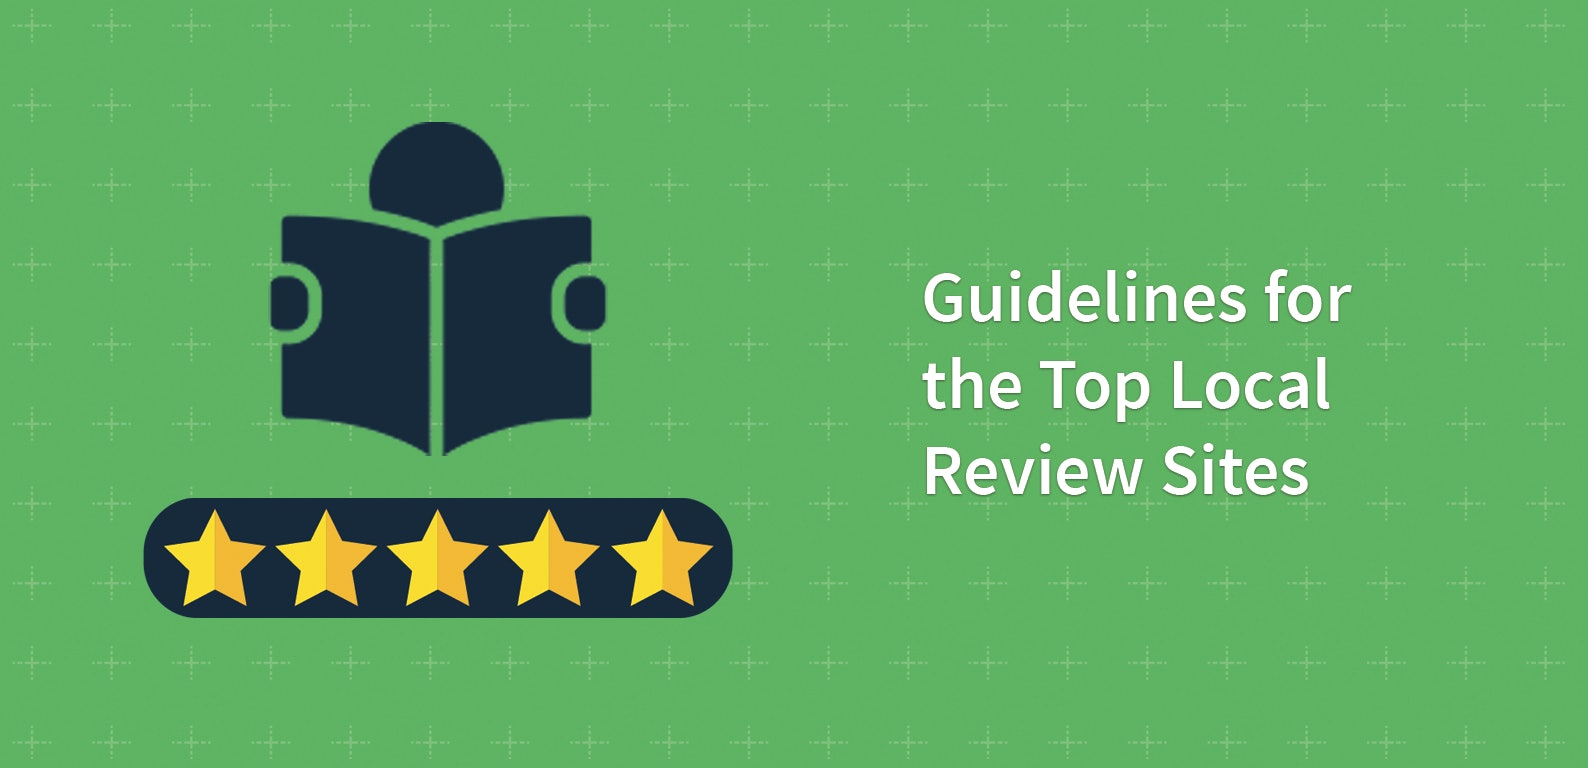 Guidelines for the Top Local Review Sites: Rules from Google